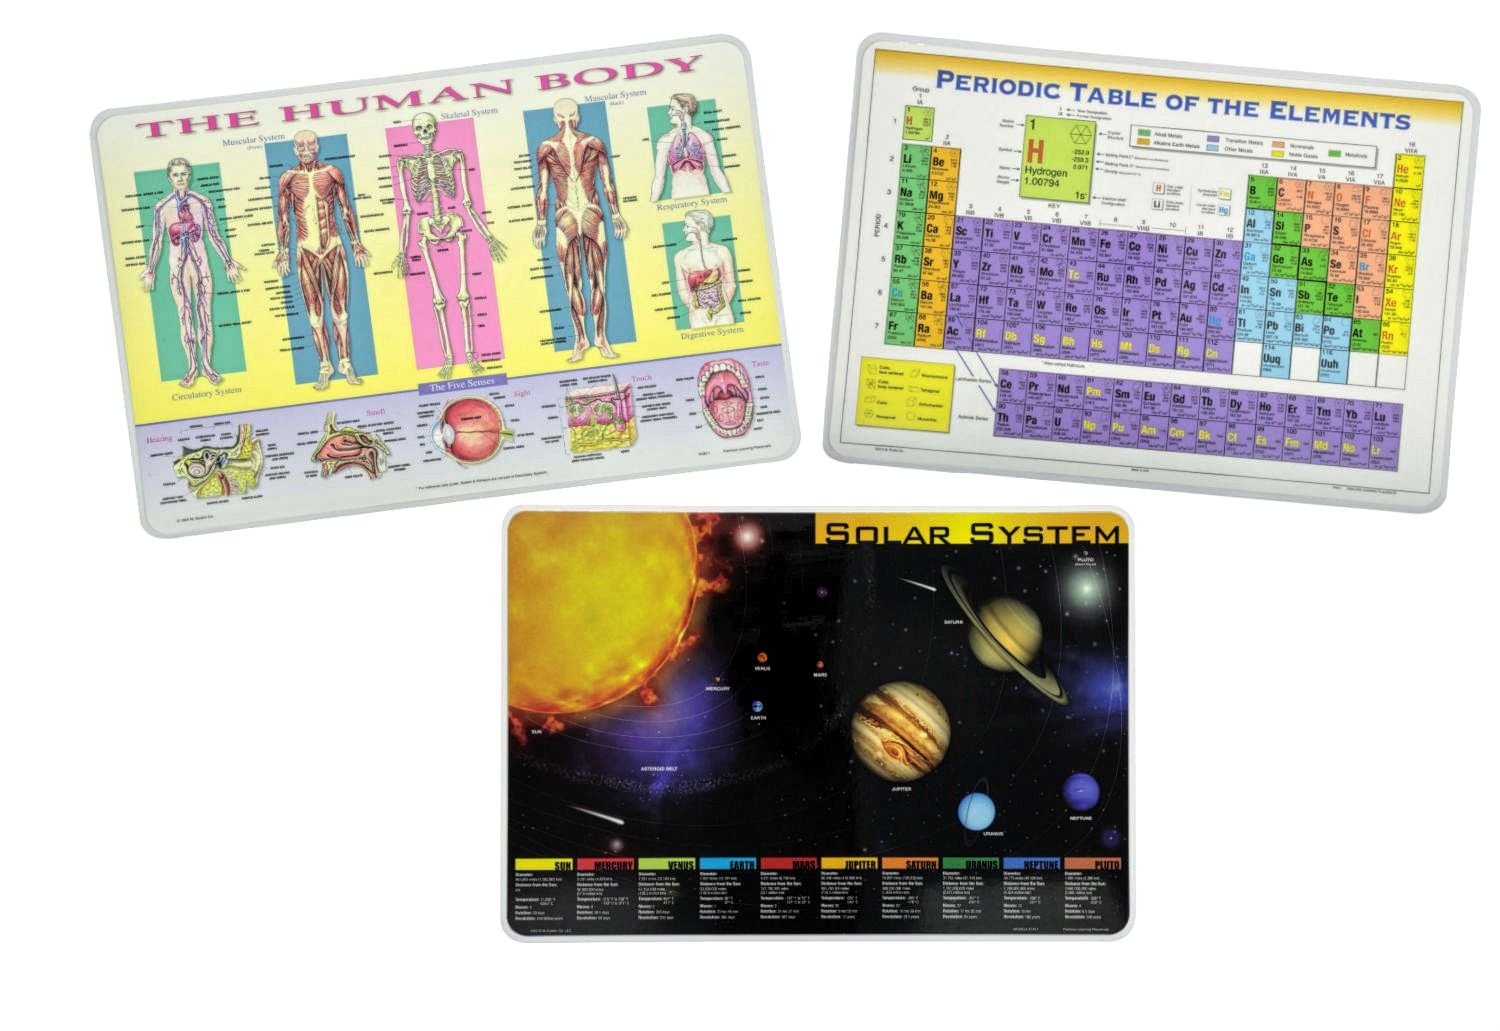 Periodic Table of Elements, Human Body, Solar System Learning Placemats for Kids